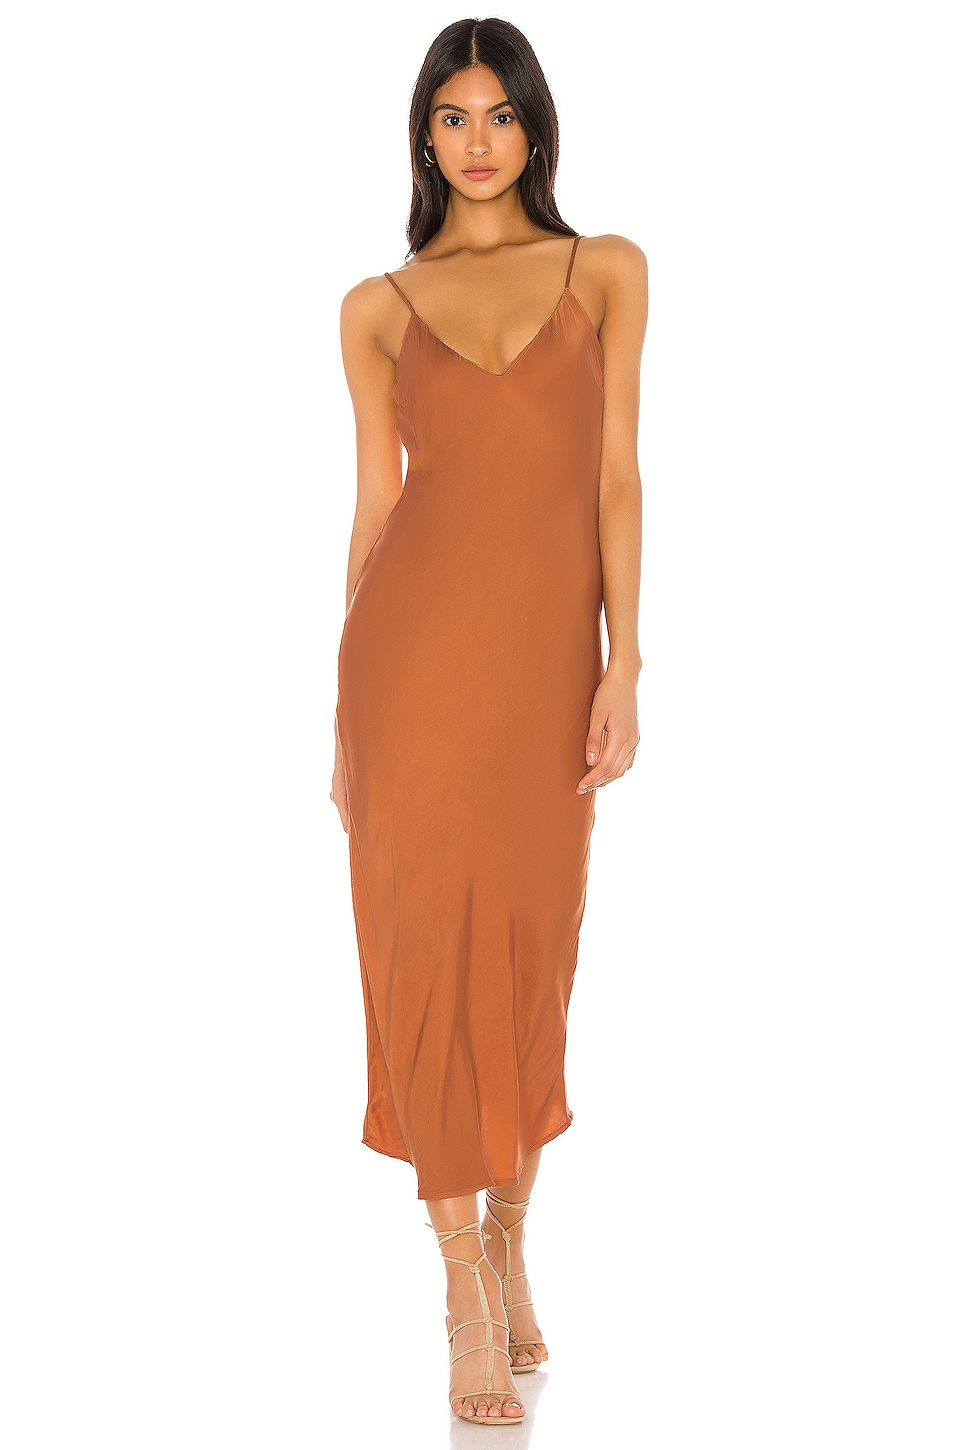 Cali Dreaming Vaea Slip Dress in Copper